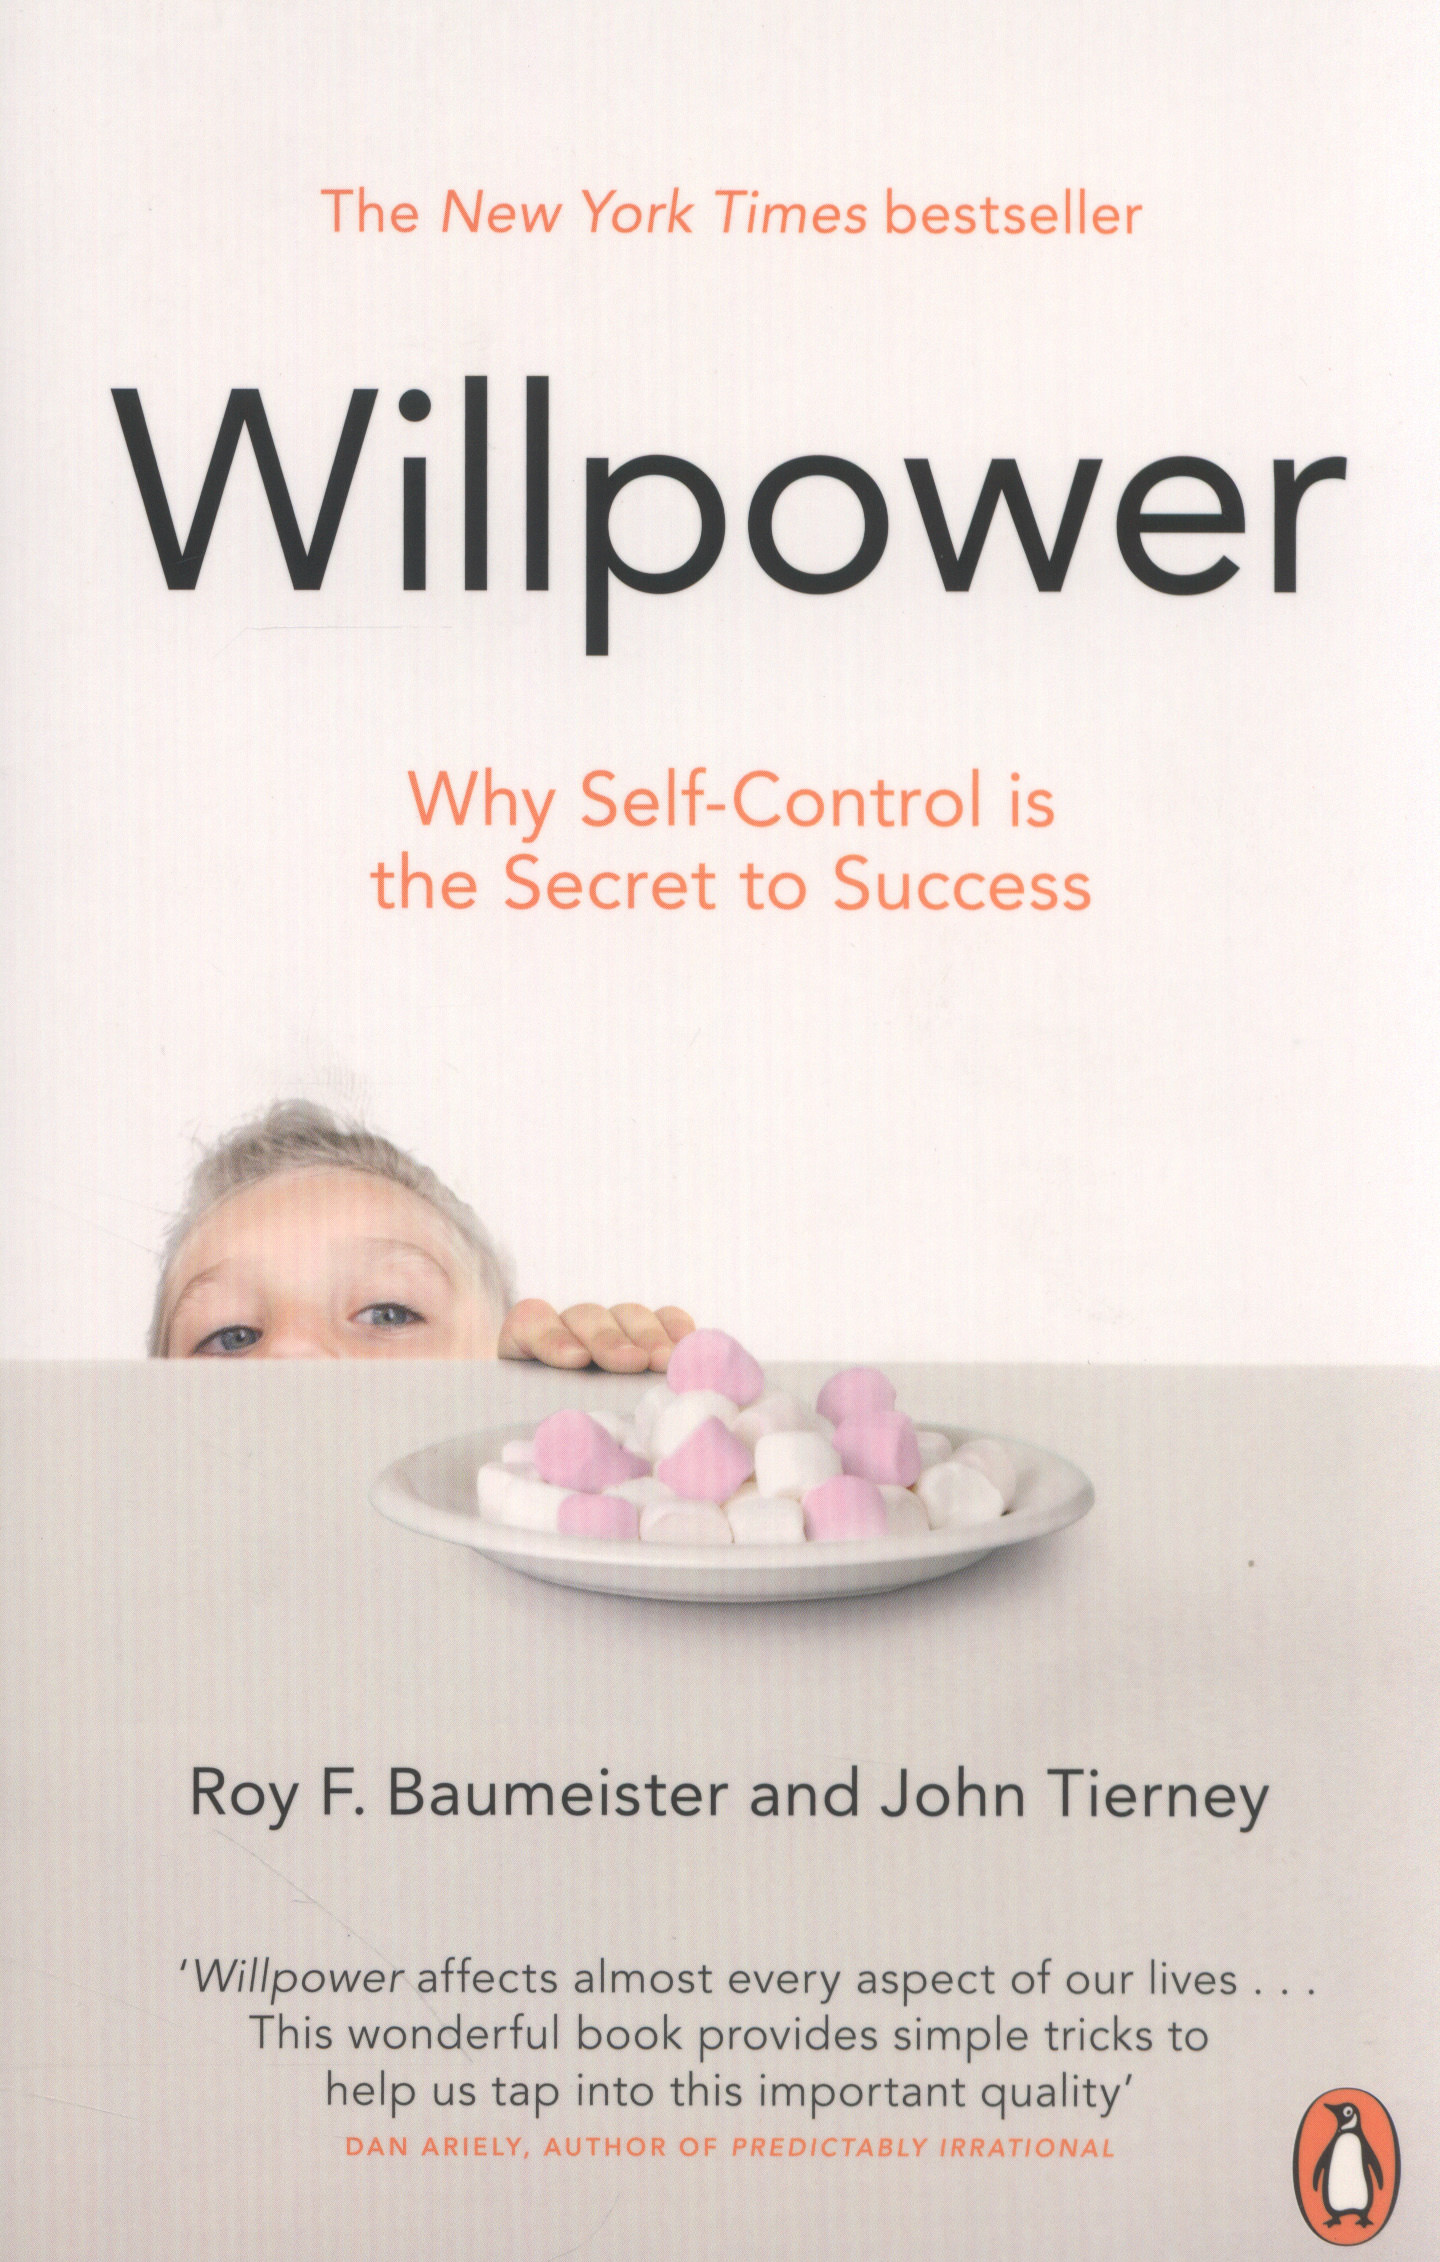 Willpower by John Tierney and Roy Baumeister |||